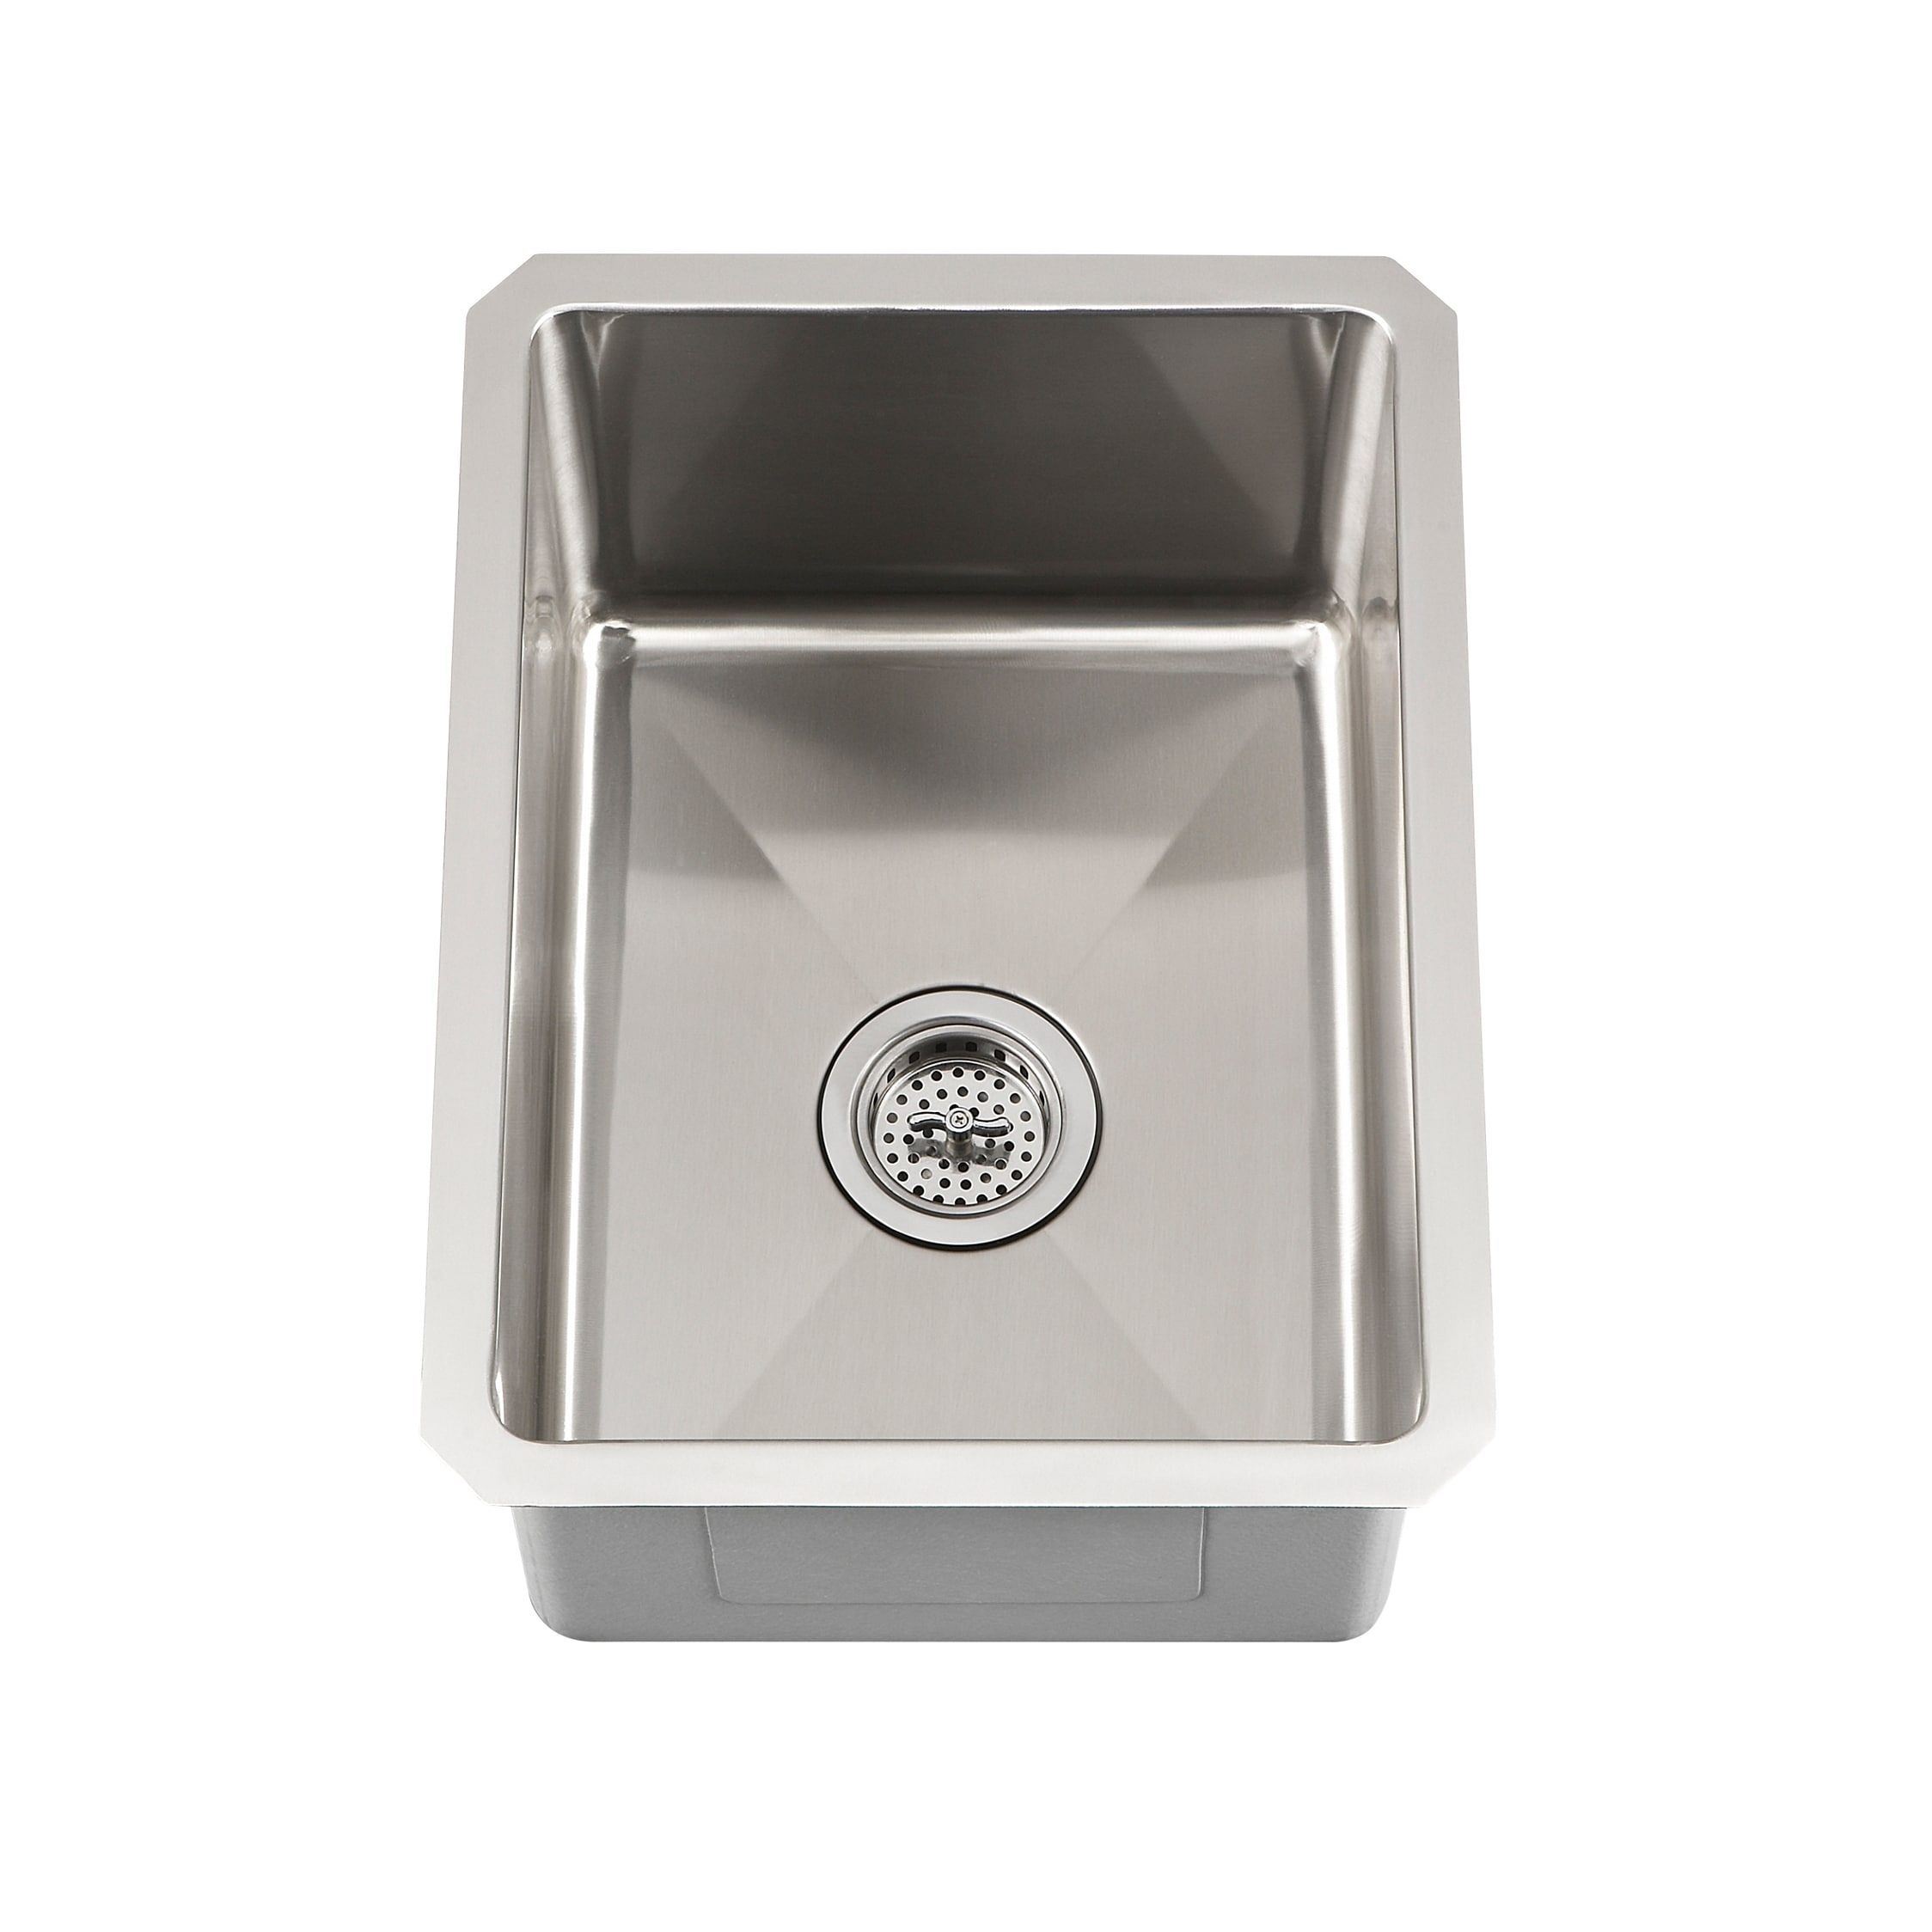 ... Bowl Bar Sink - Overstock Shopping - Great Deals on Kitchen Sinks